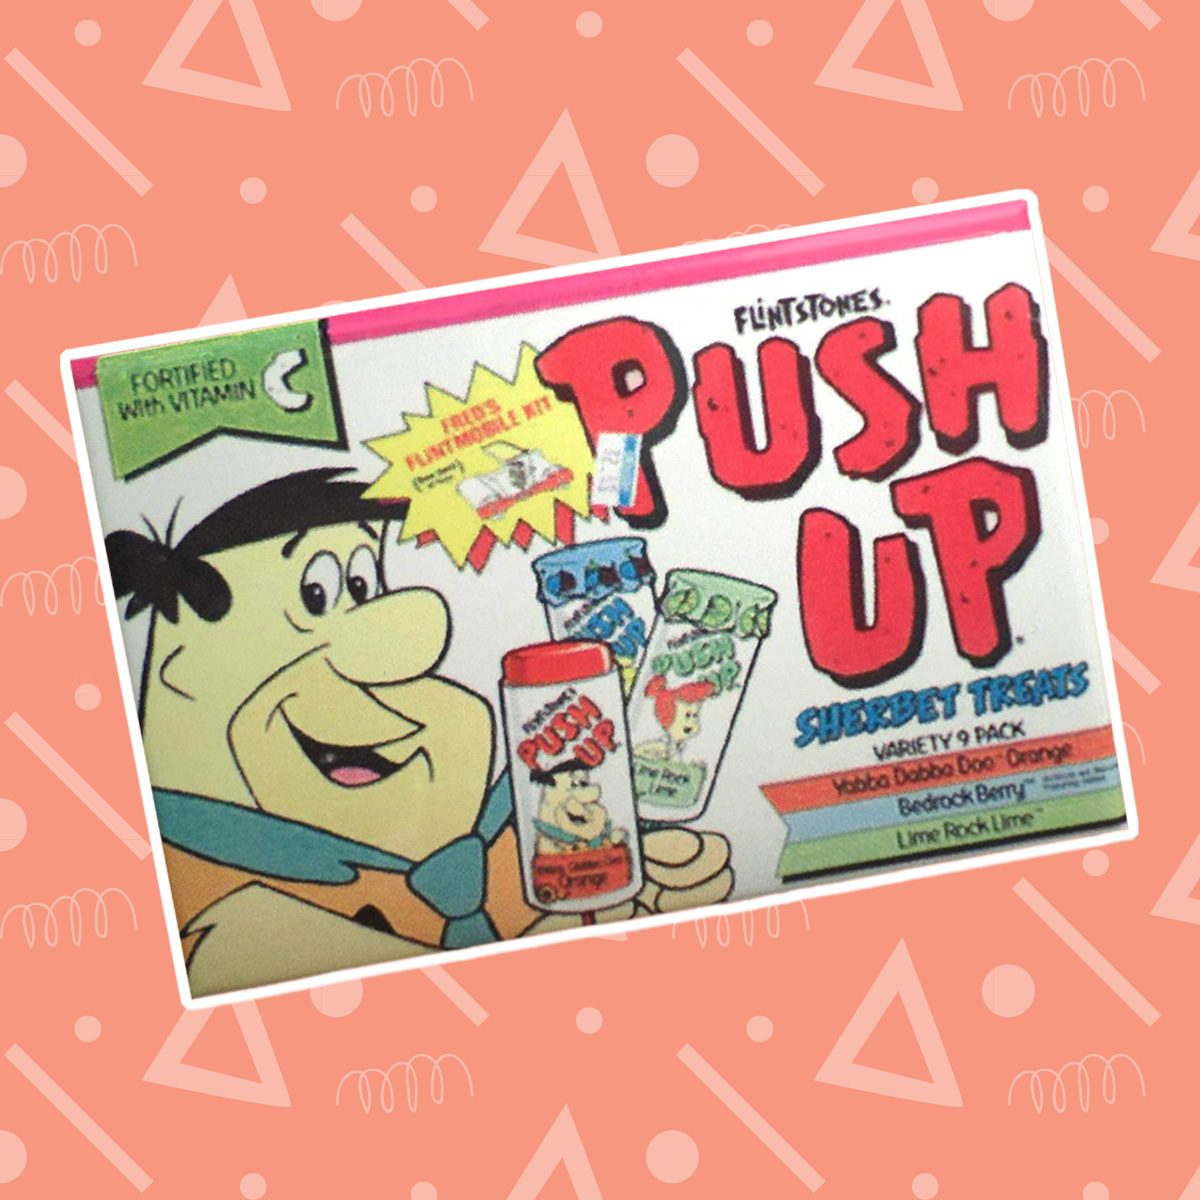 flintstones push pop